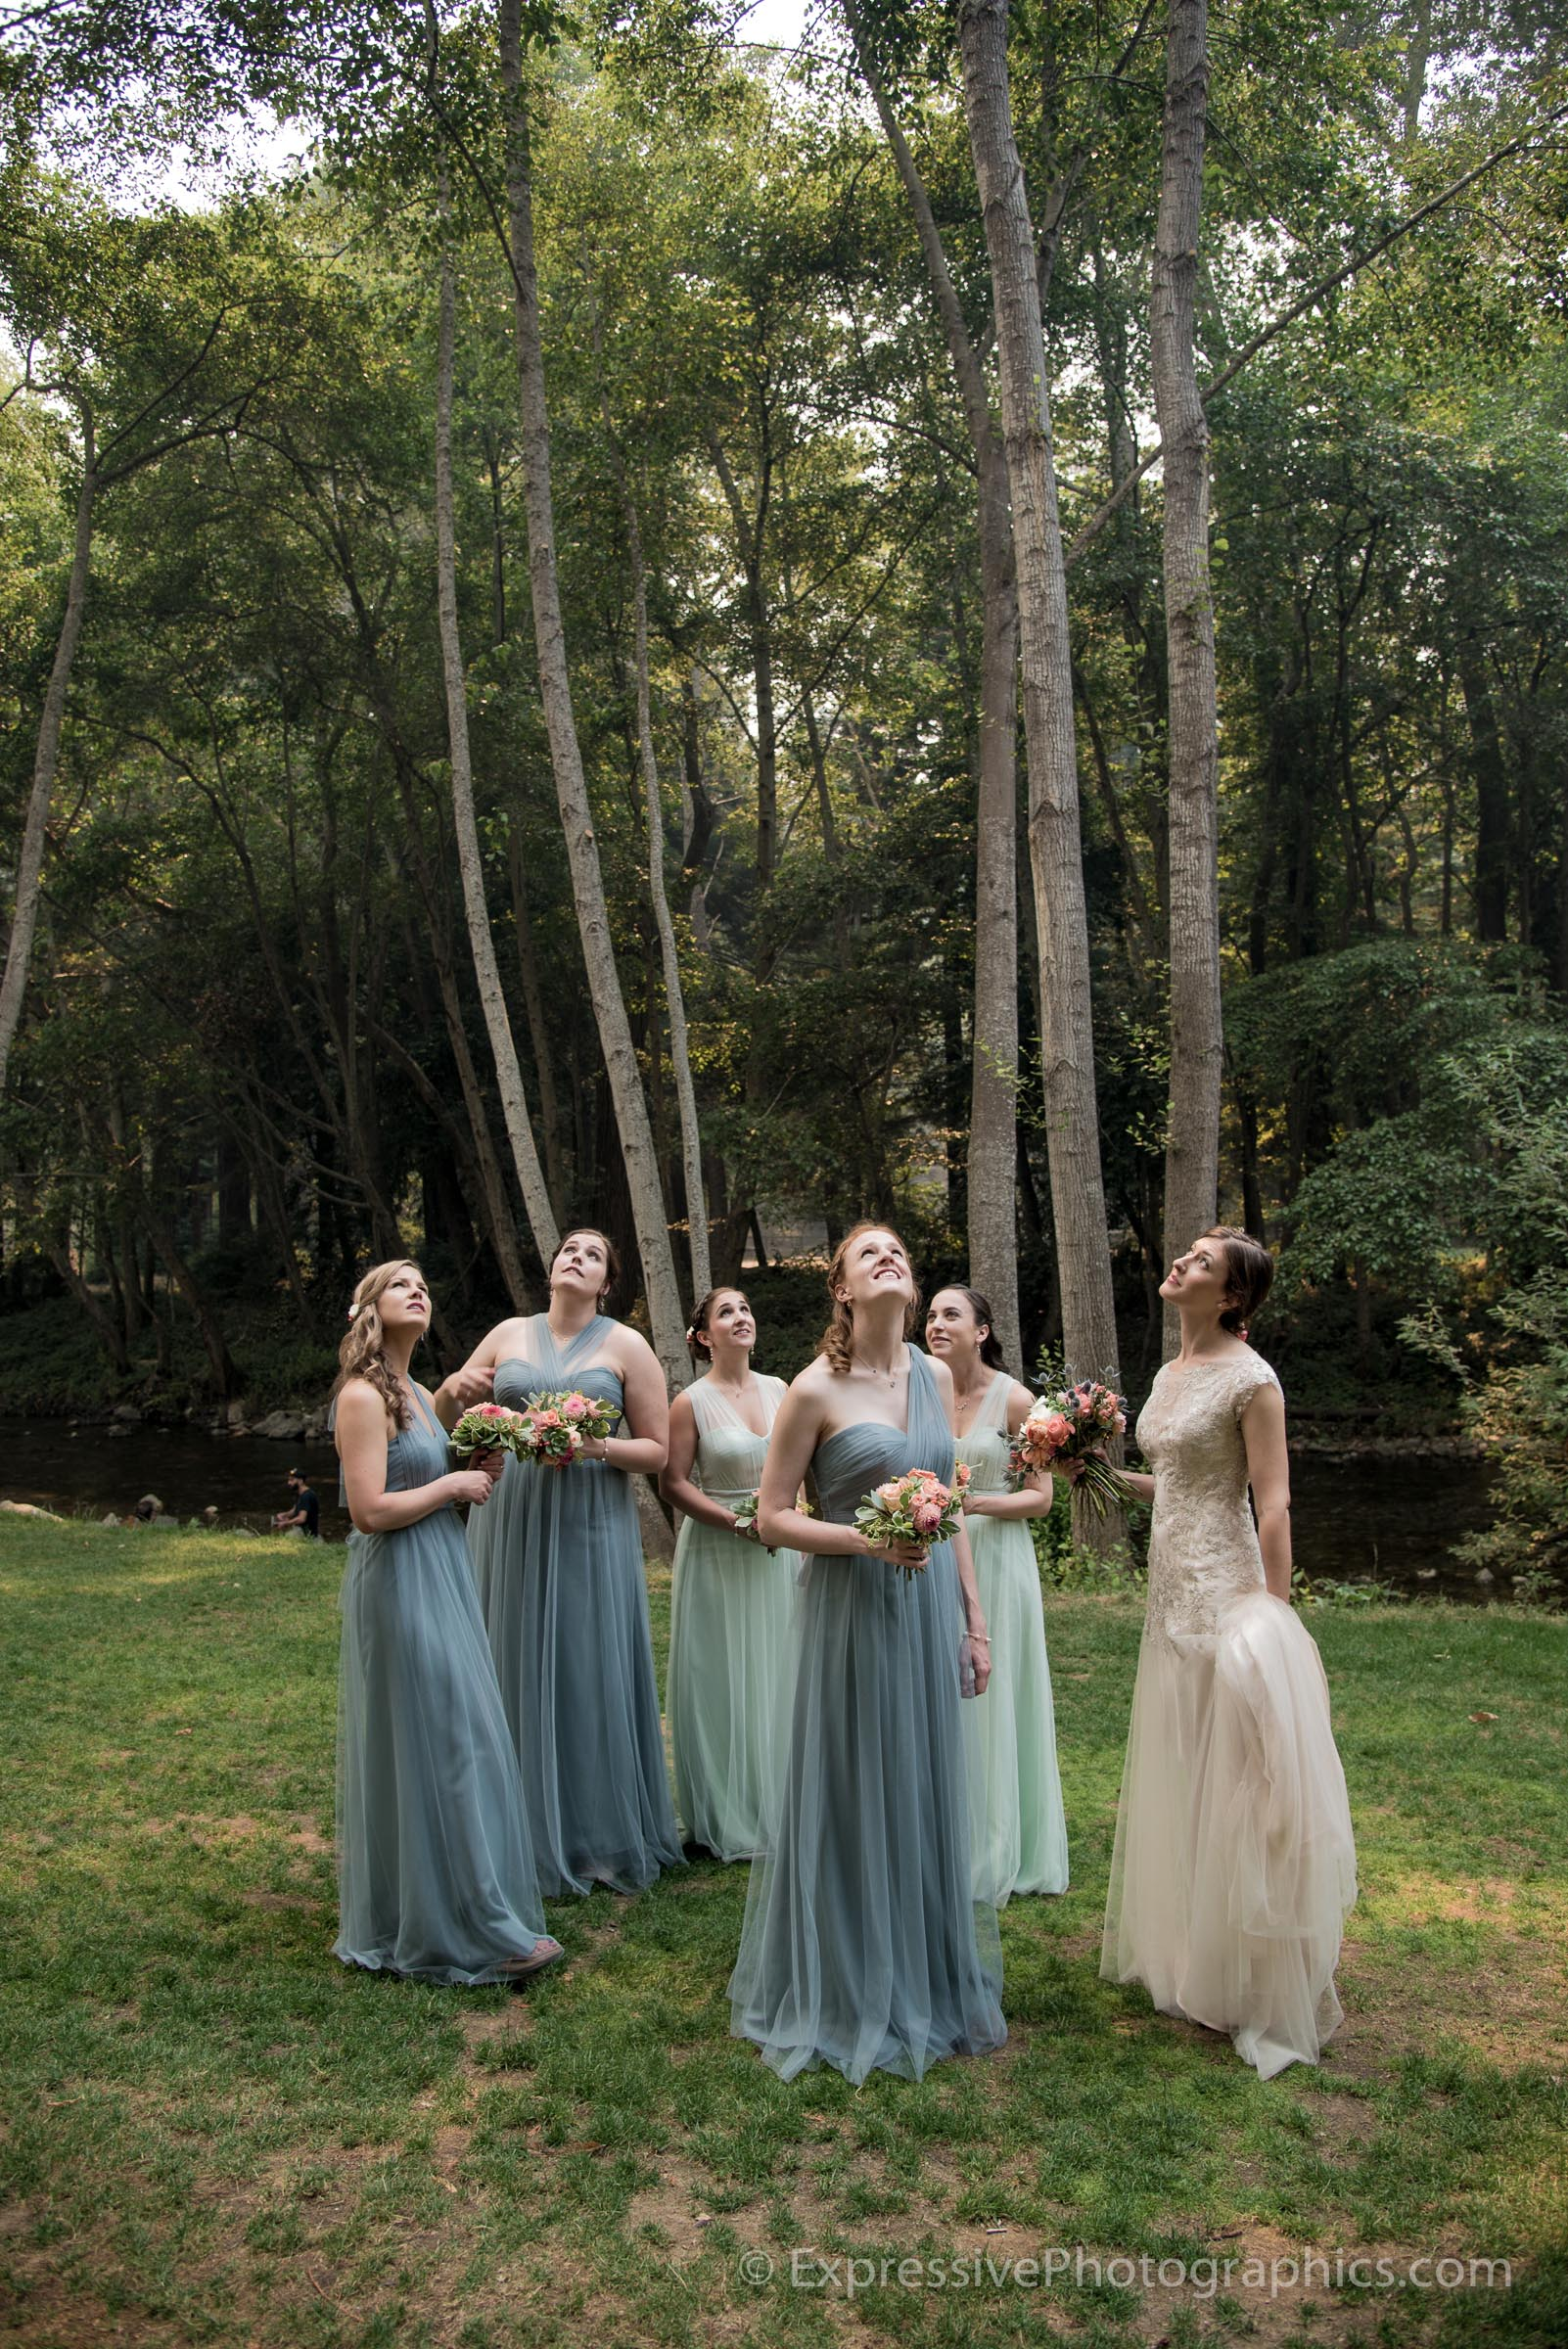 Expressive-Photographics-bridesmaids-forests-bride-20160723_0233.jpg